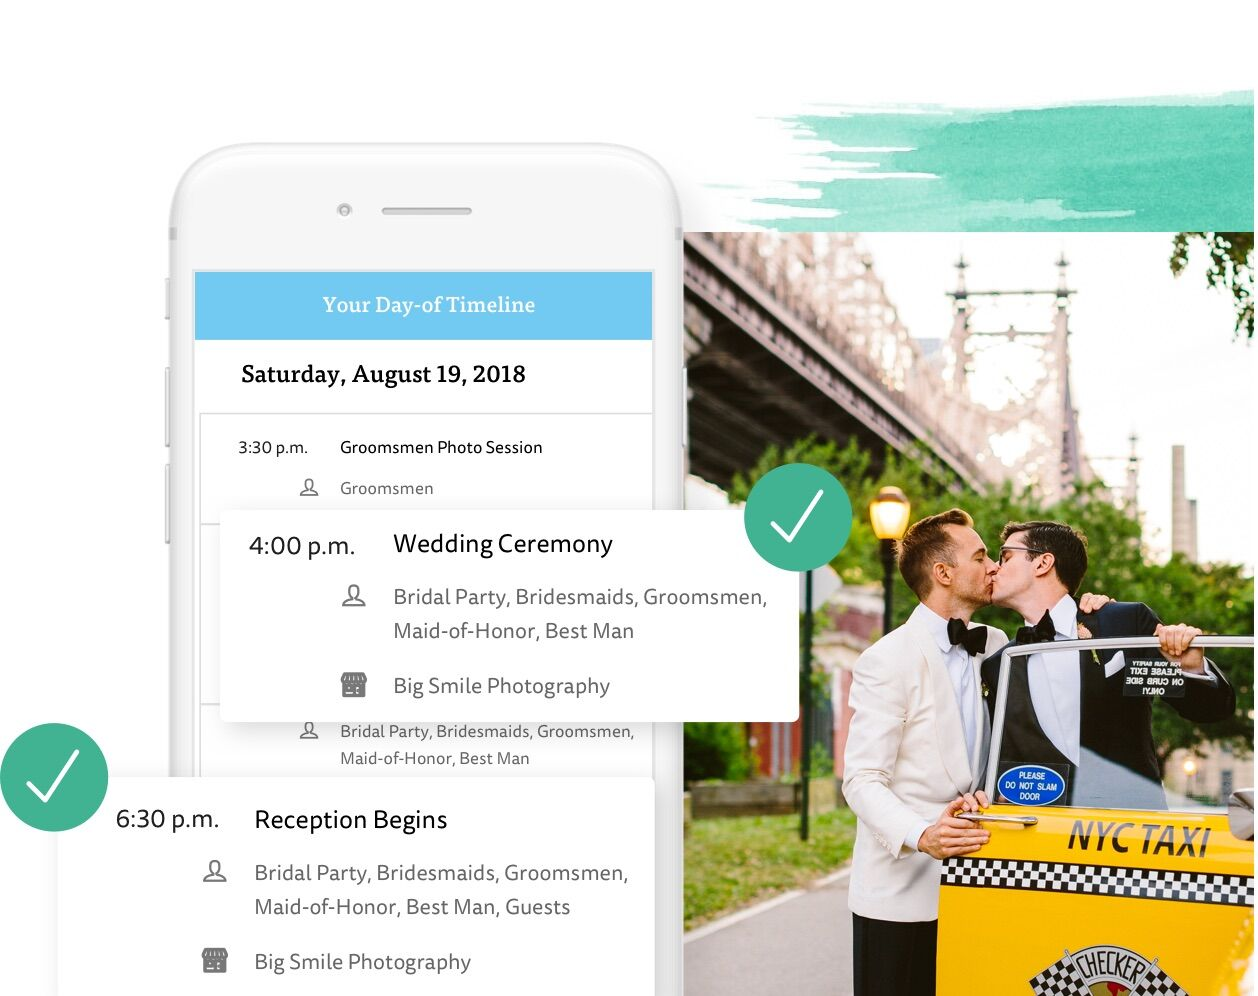 Your Wedding Timeline on The Knot App